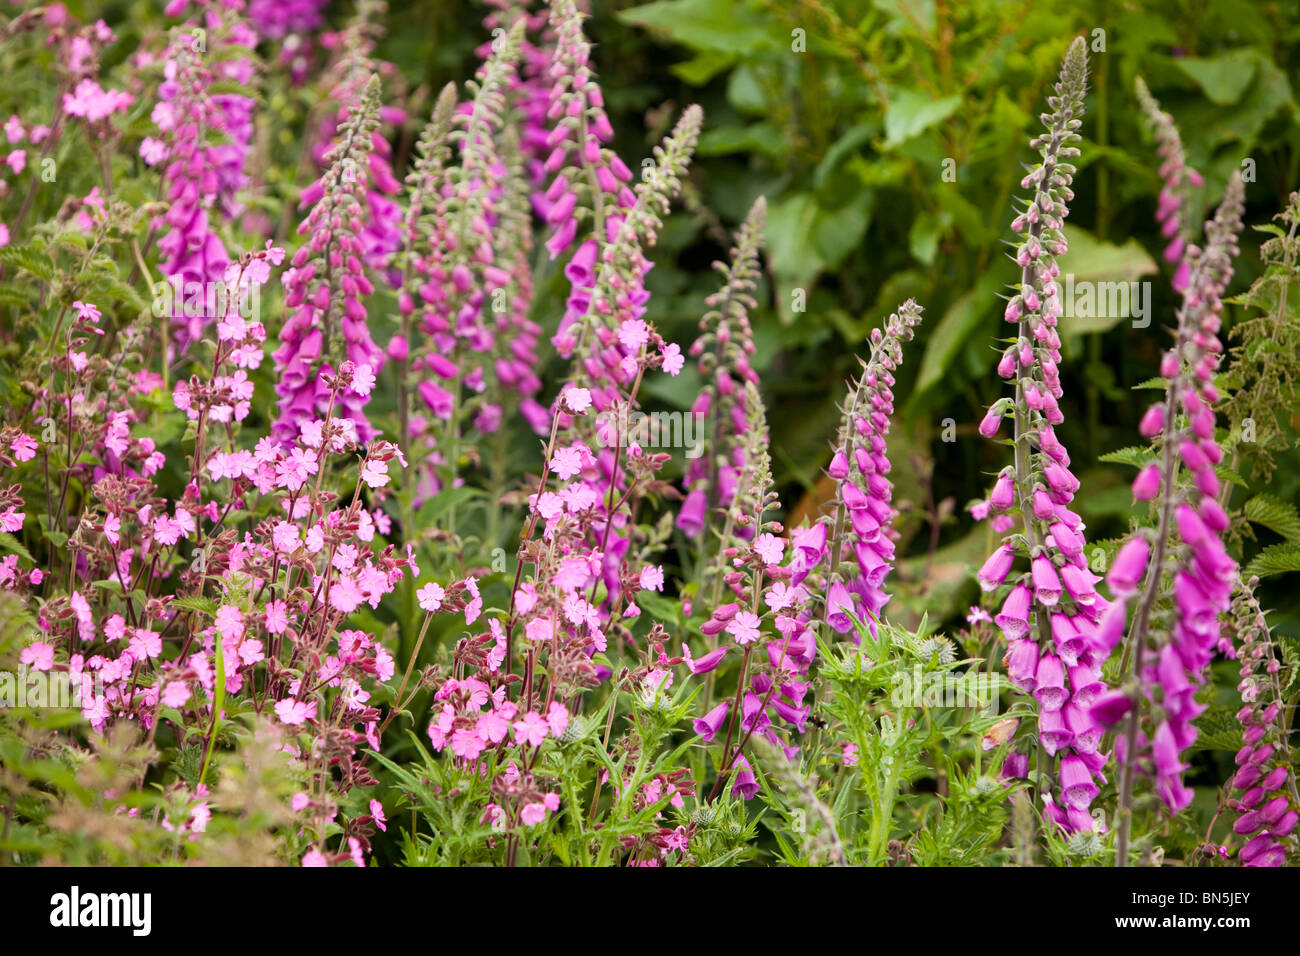 Foxgloves and Red Campion growing on the Cornish coast near Porthcurno, UK. Stock Photo